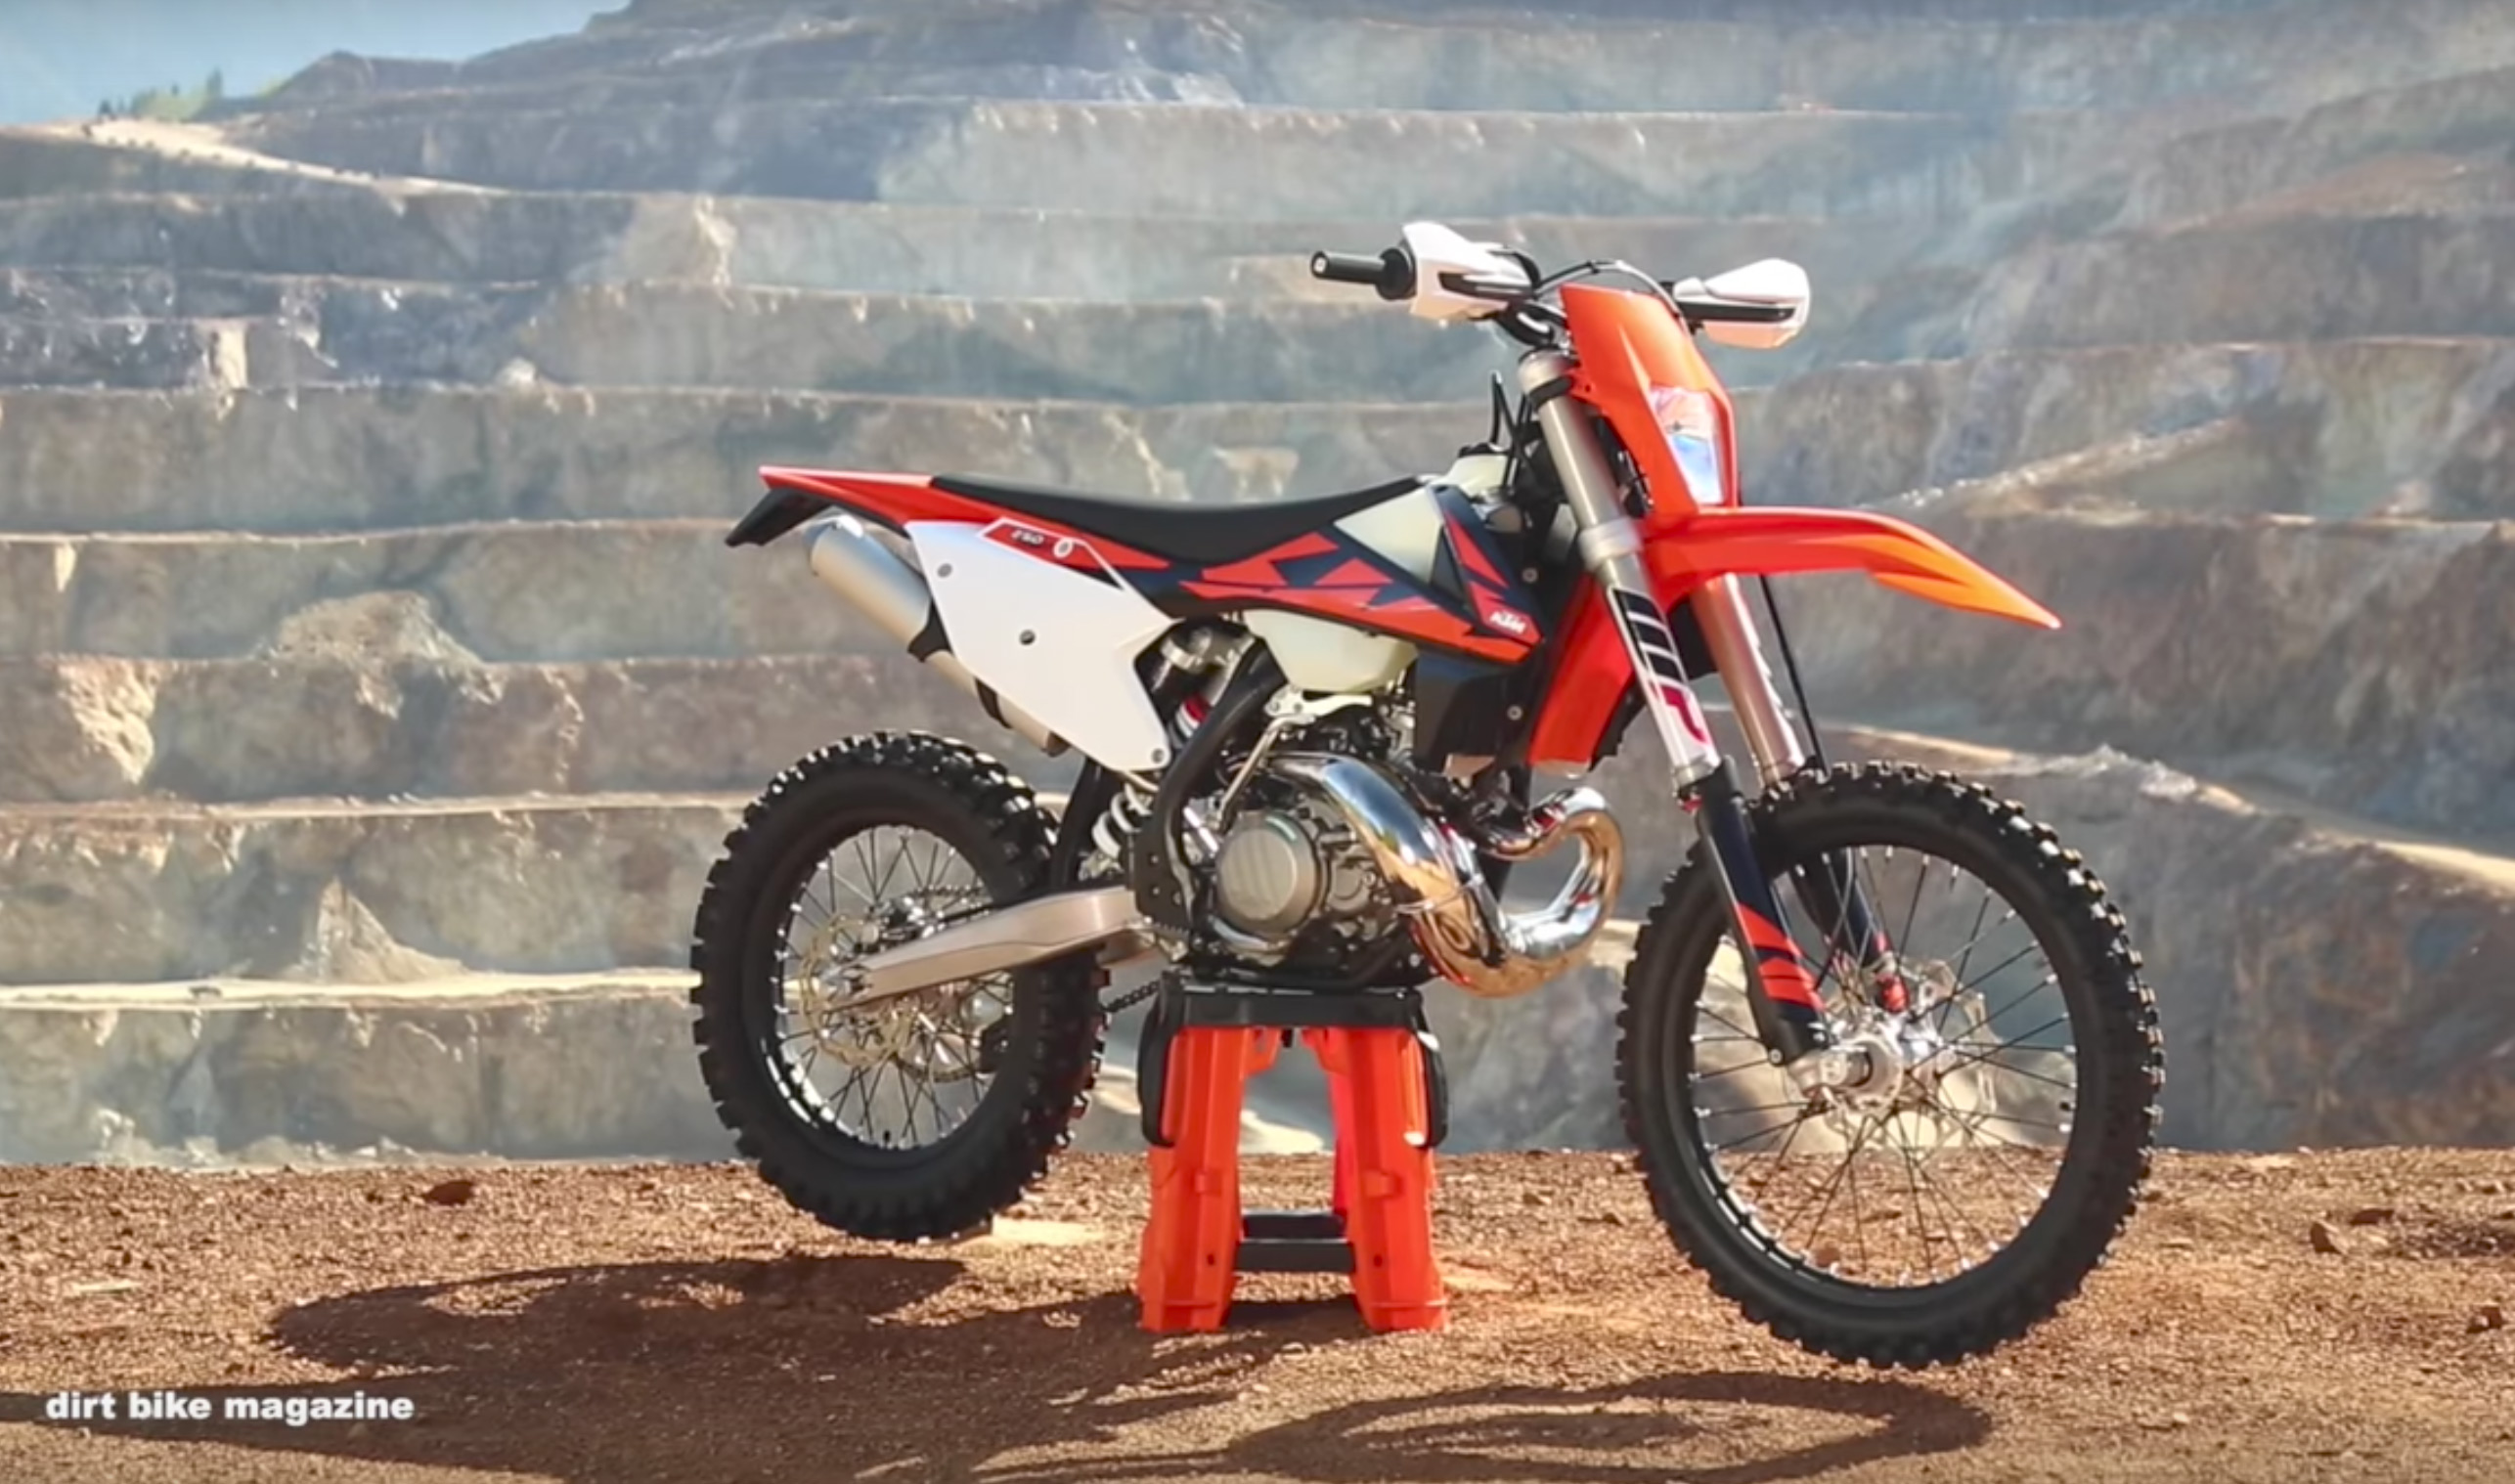 2018 ktm 250 xcw. fine 2018 first ride video on the new 2 stroke fuel injection ktm 250 xcw from dirt  bike magazine intended 2018 ktm xcw